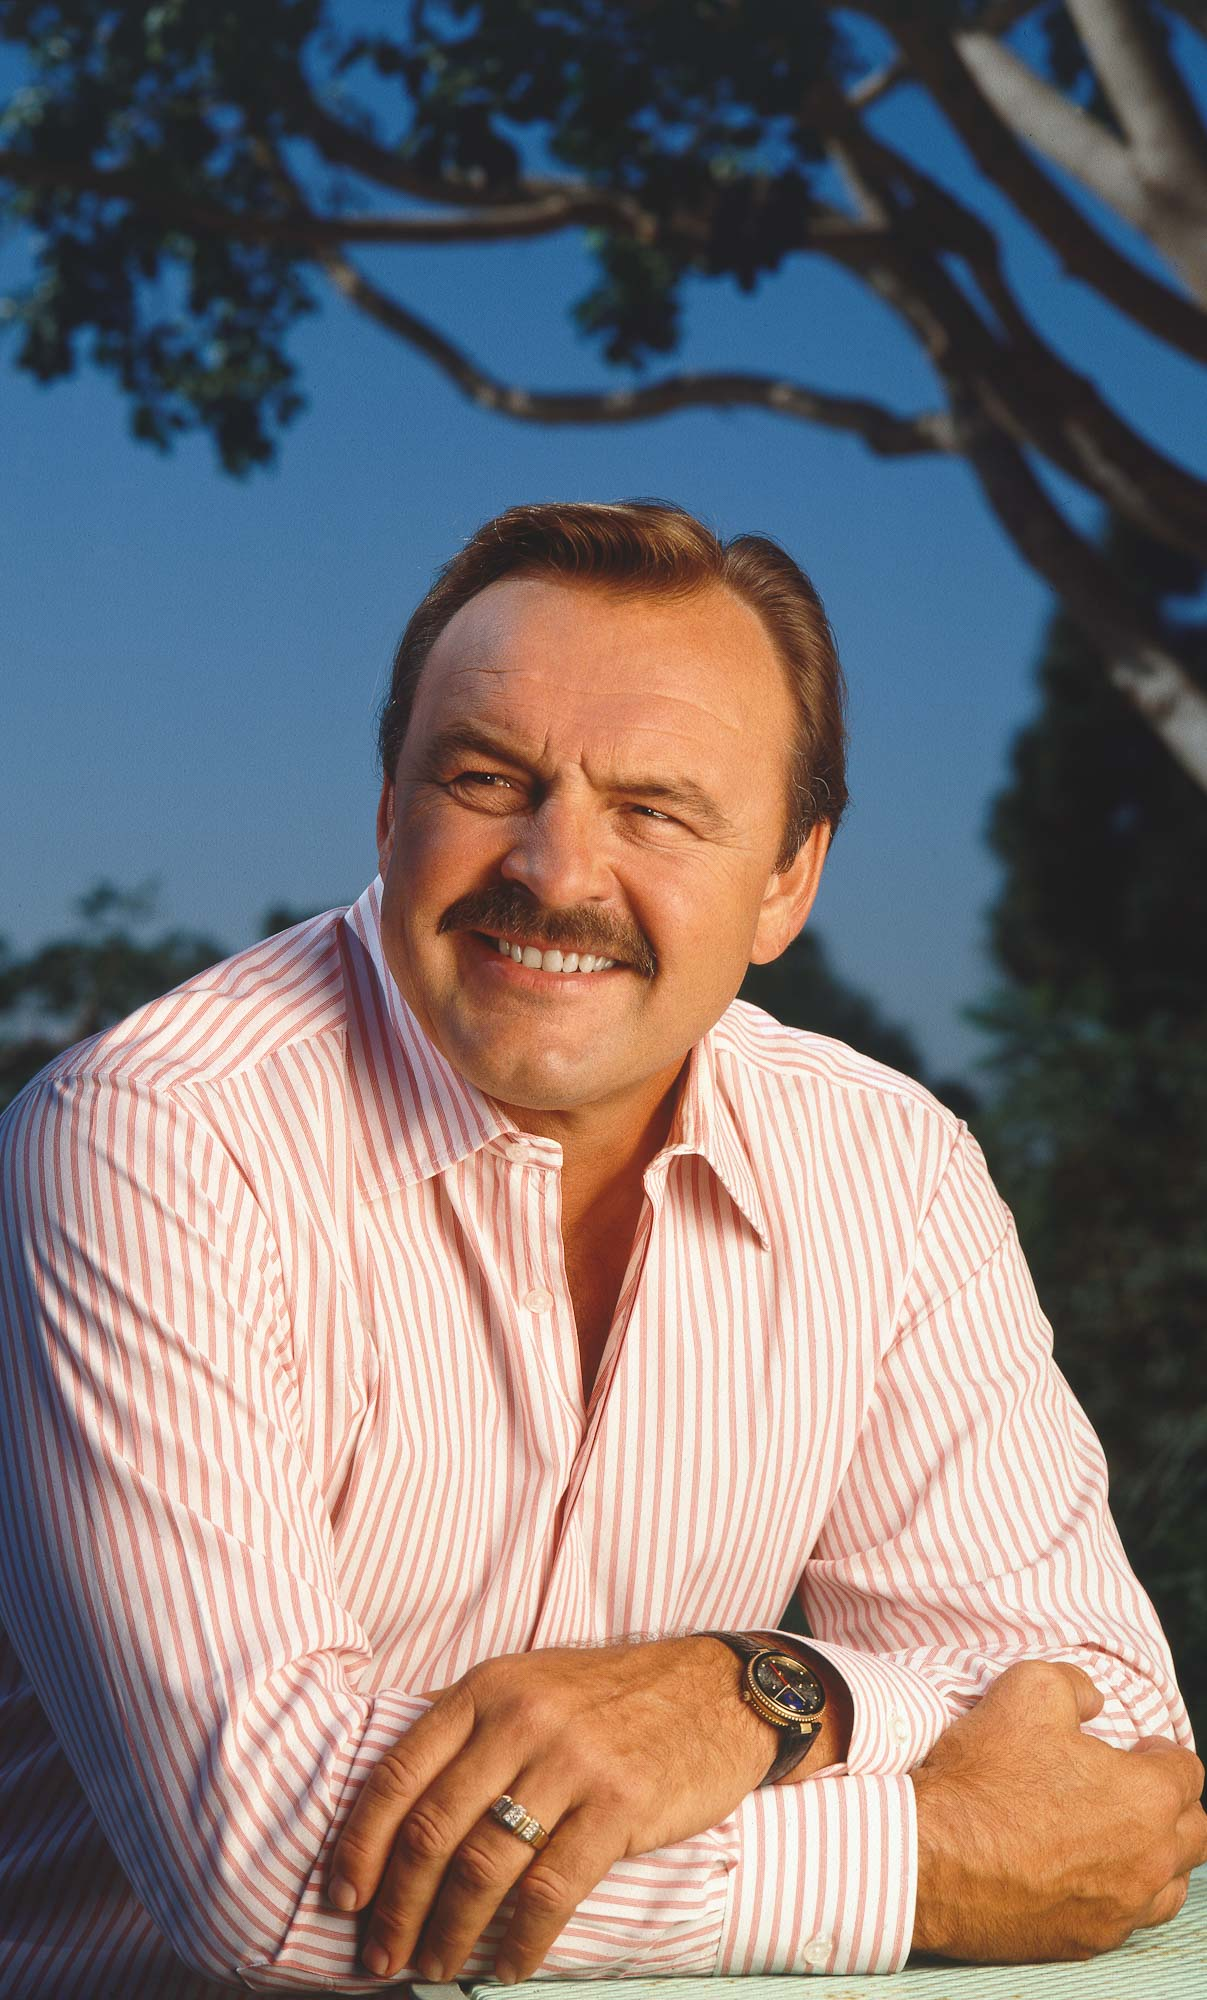 Dick Butkus Photographed by Will Crockett